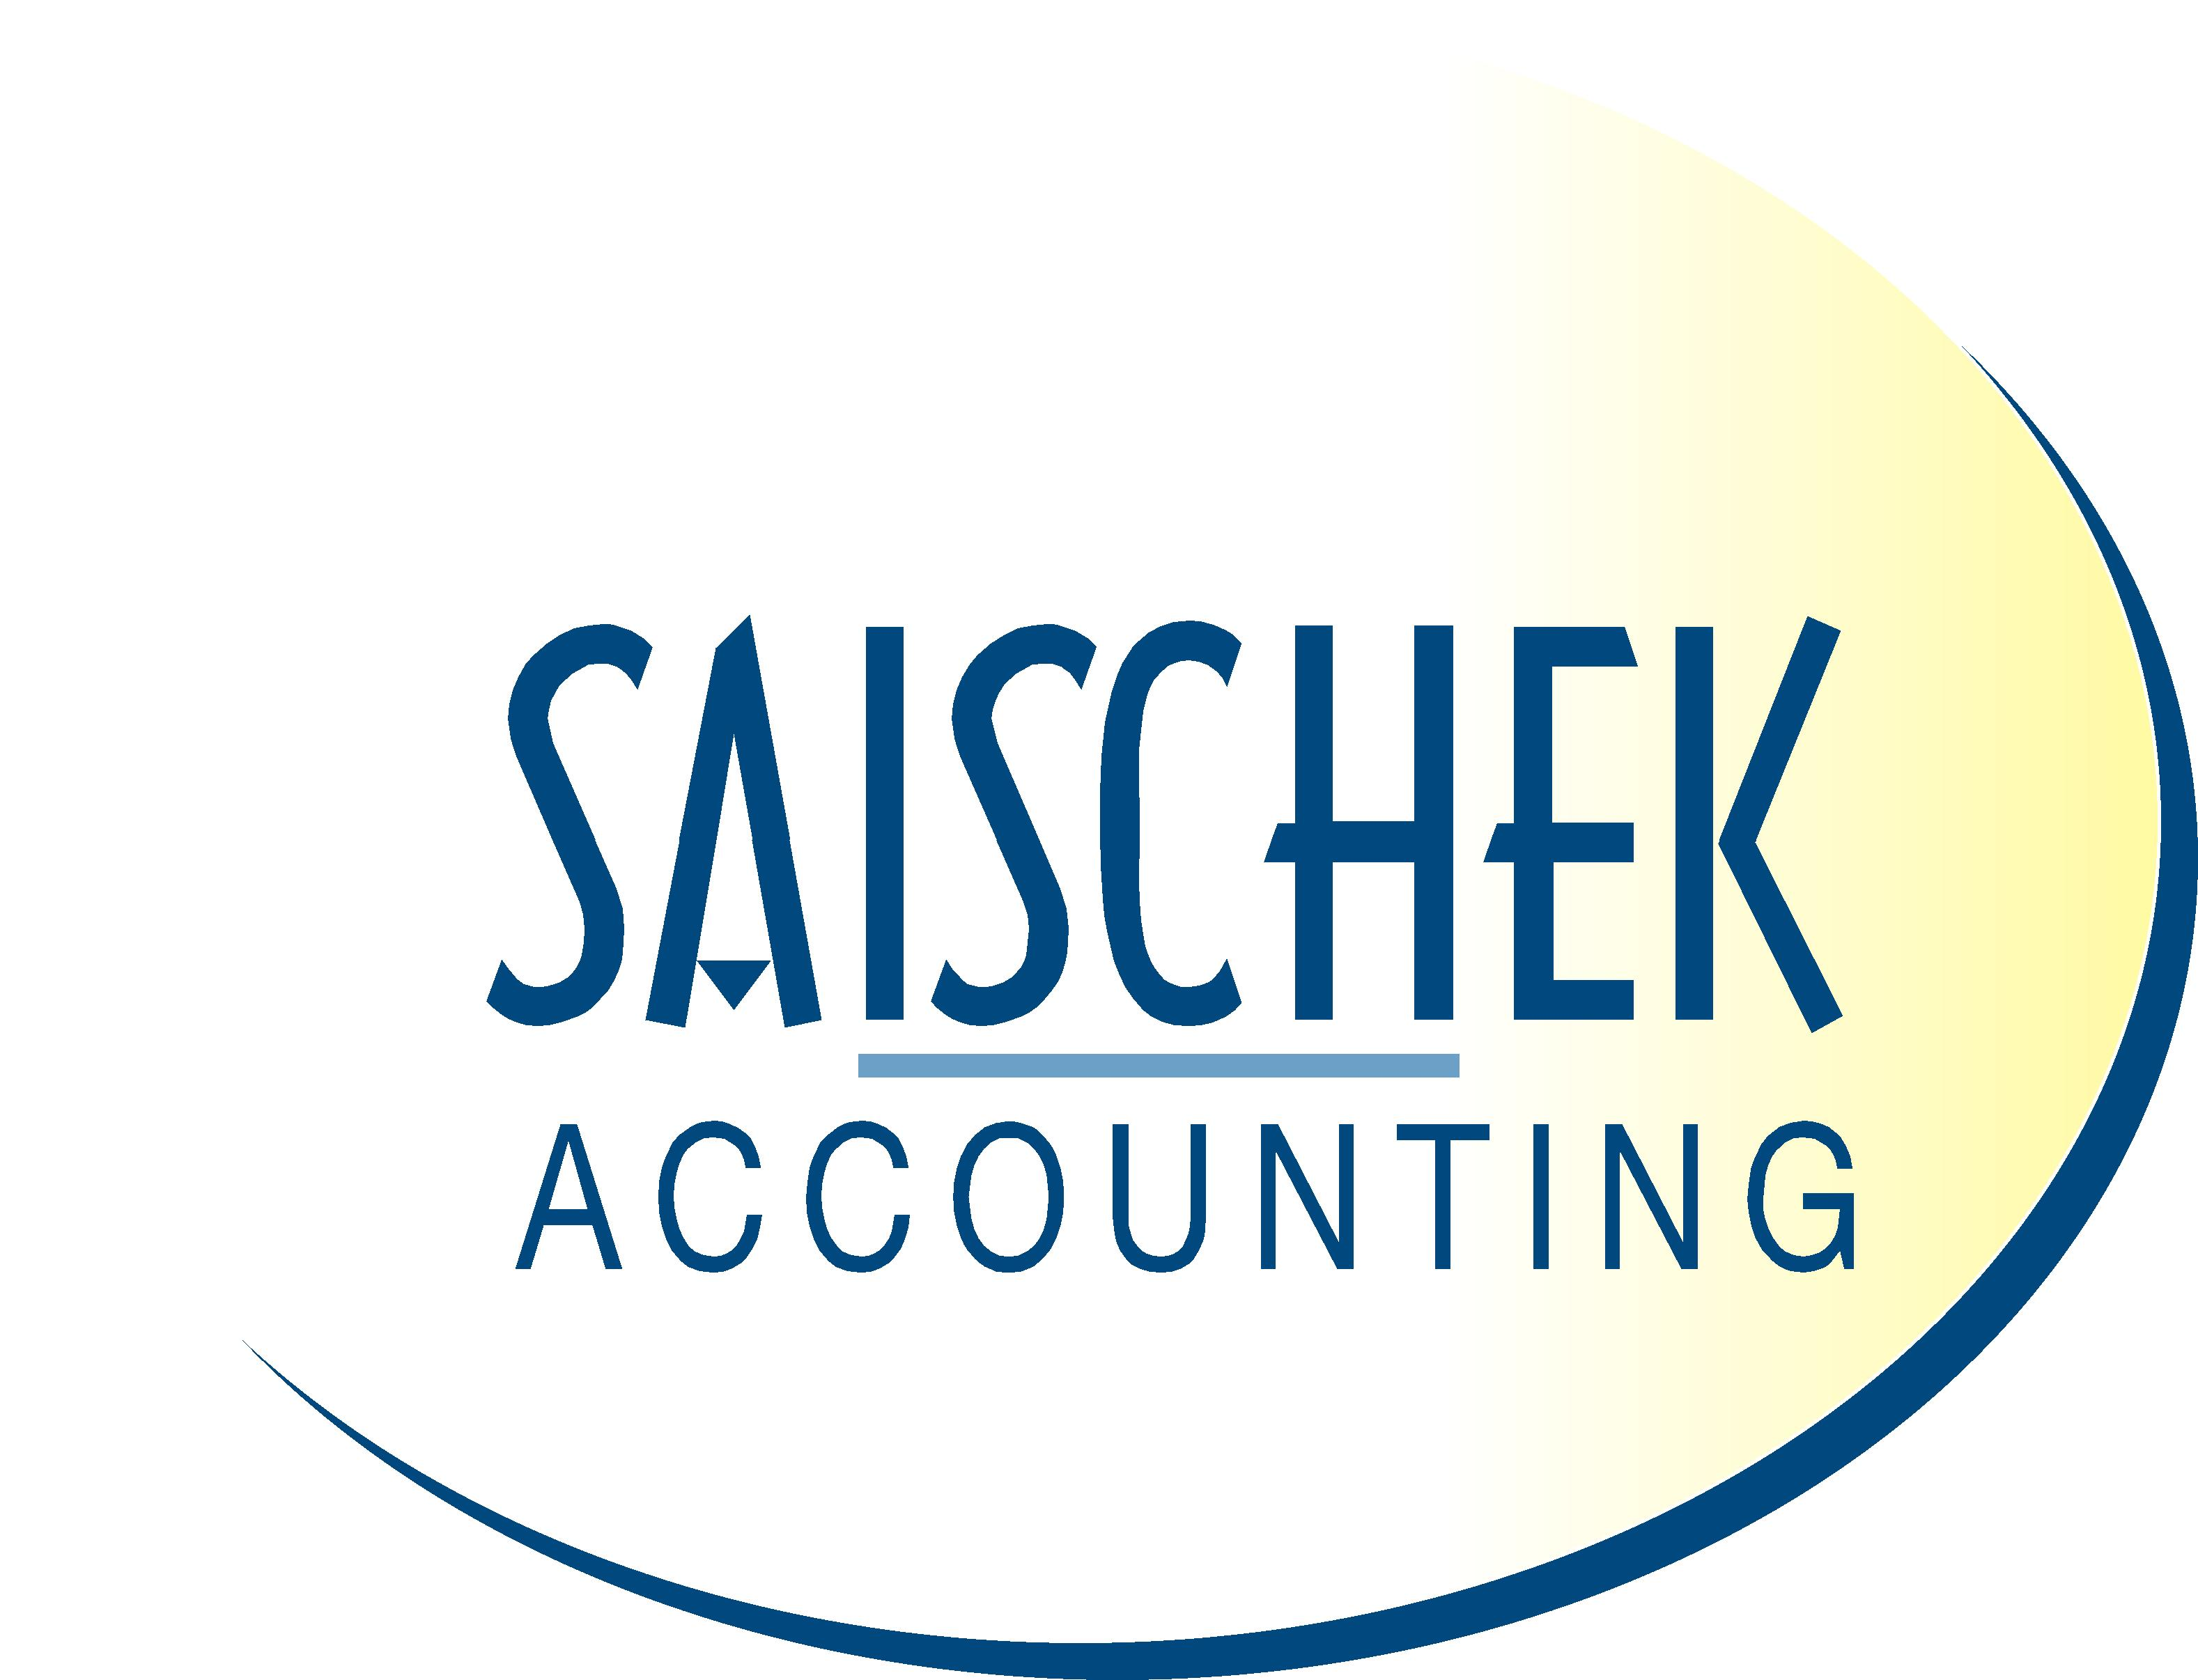 Saischek Accounting